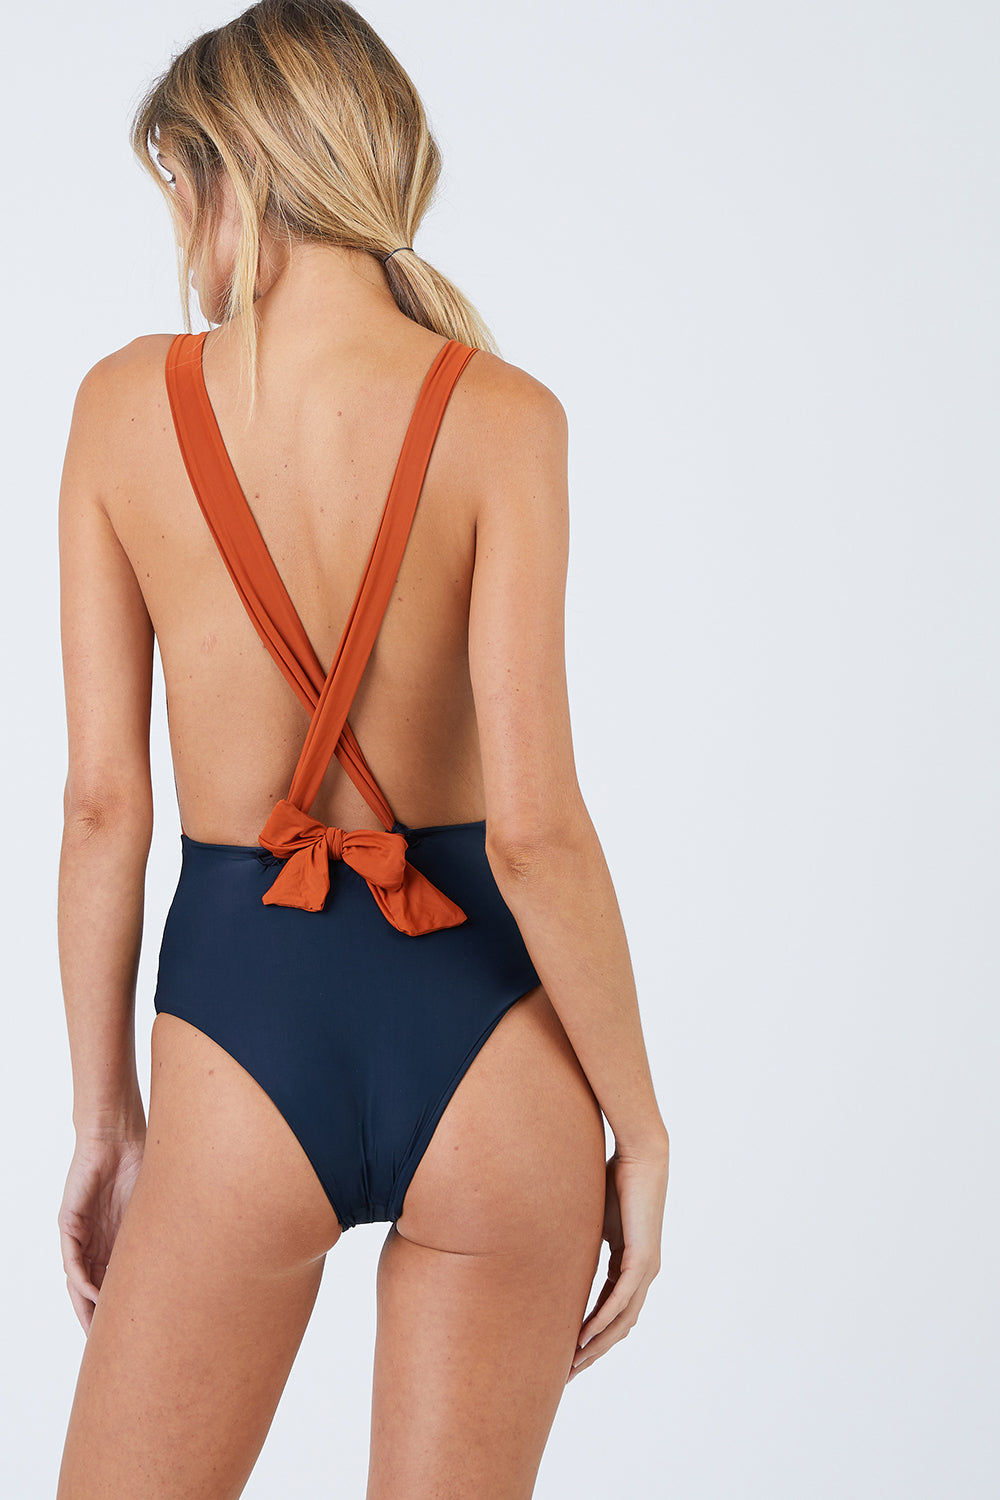 HAIGHT Marina Plunge One Piece Swimsuit - Rust & Black One Piece | Rust & Black| Haight Marina Plunge One Piece Swimsuit - Rust & Black Features: Deep V-neck Adjustable self-fastening crossover back straps Mid cut leg Moderate coverage Ties at back Crisscross back detail Bow knot low at the back Front View